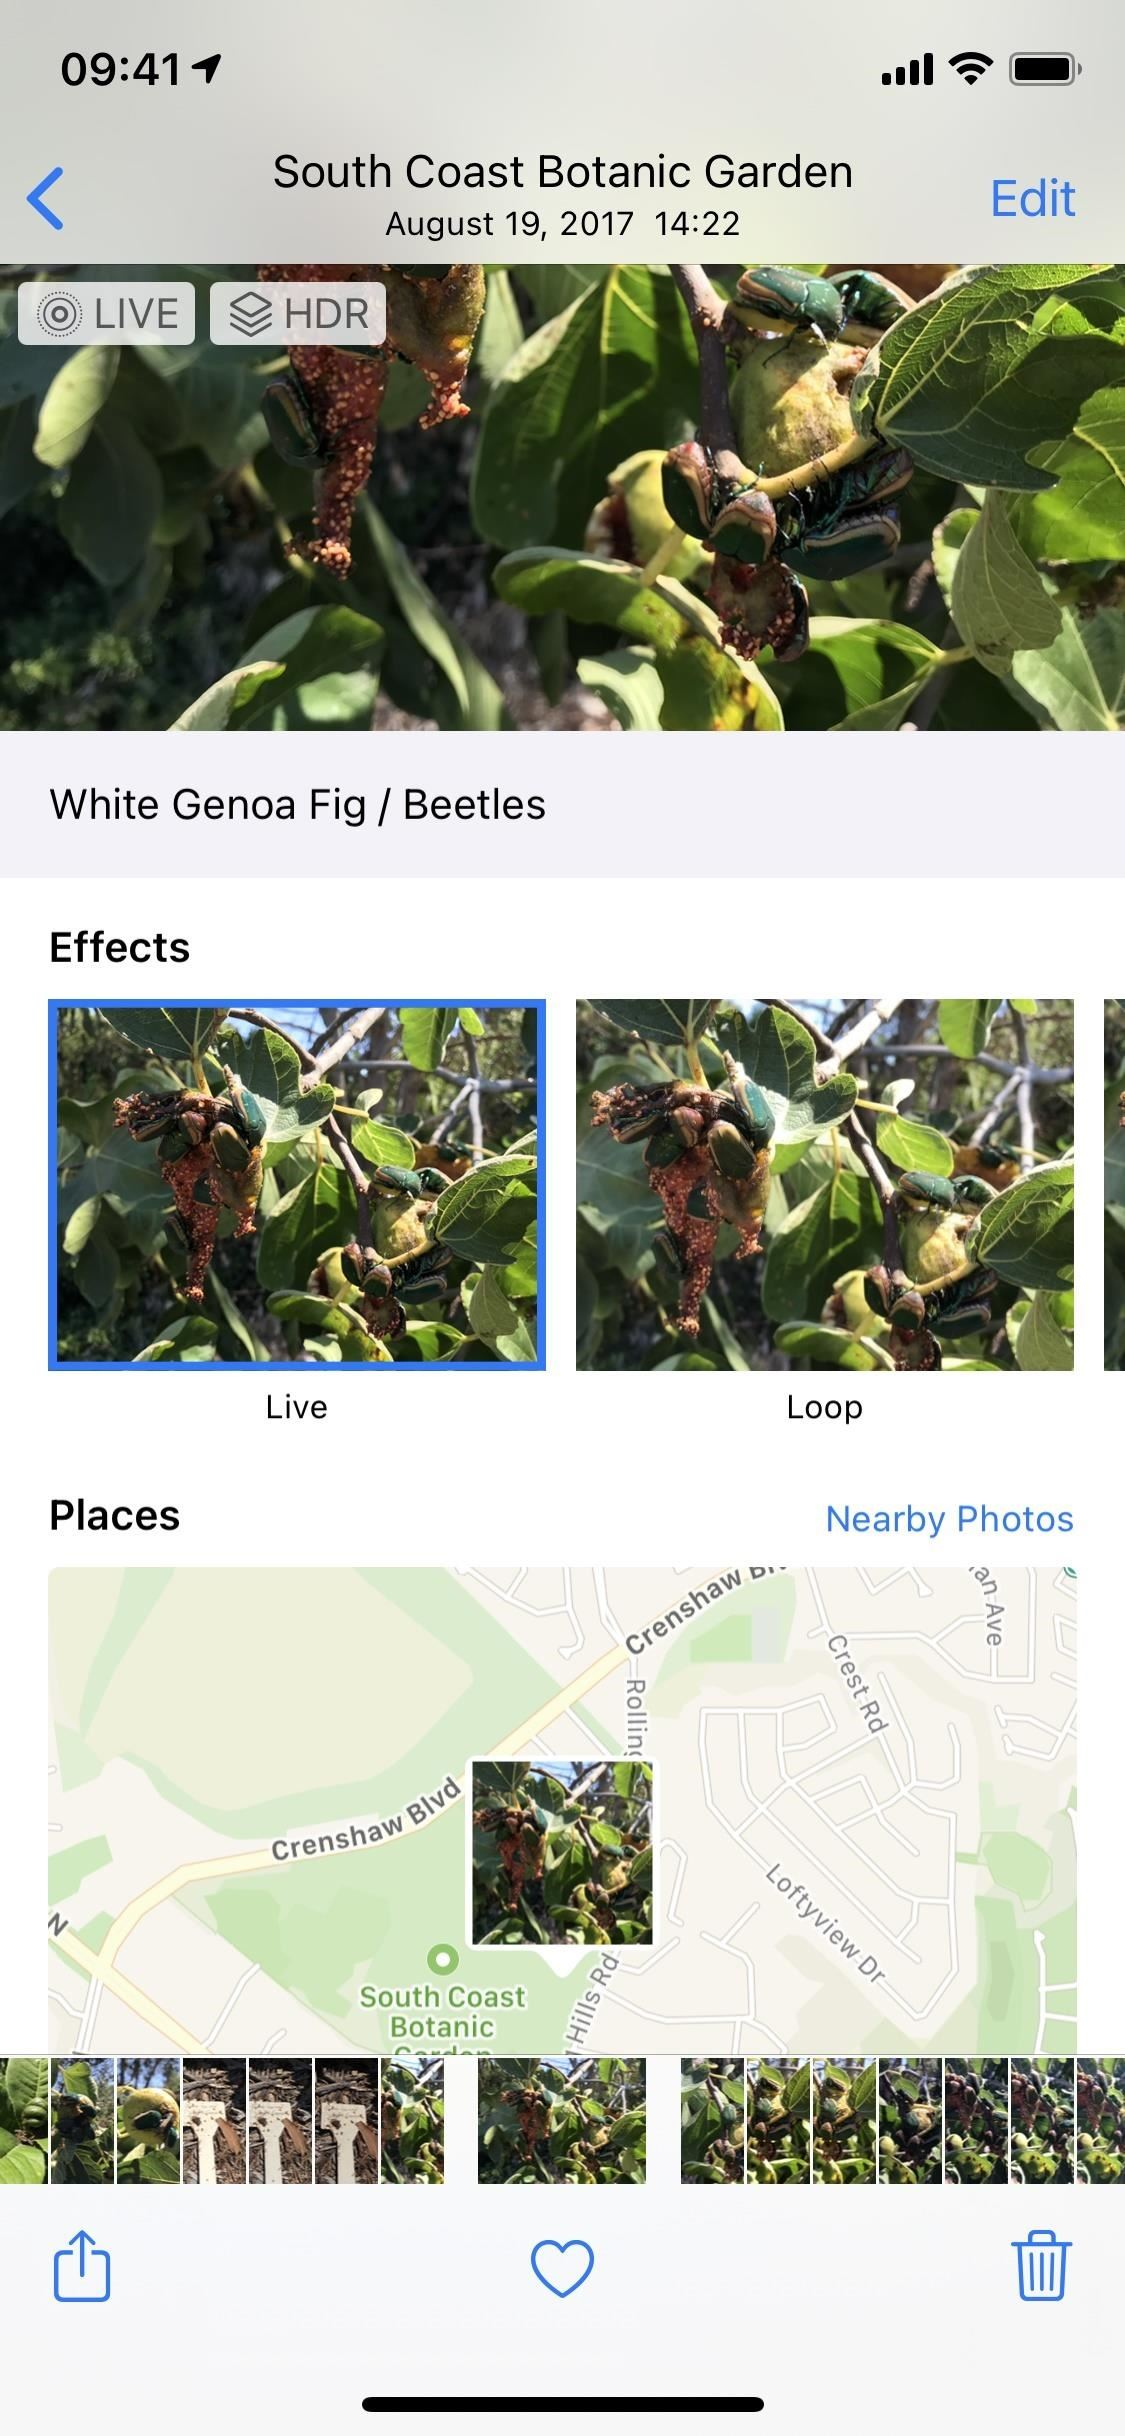 How to Add Captions to Photos & Videos in iOS 14 to Make Searching by Metadata Easier